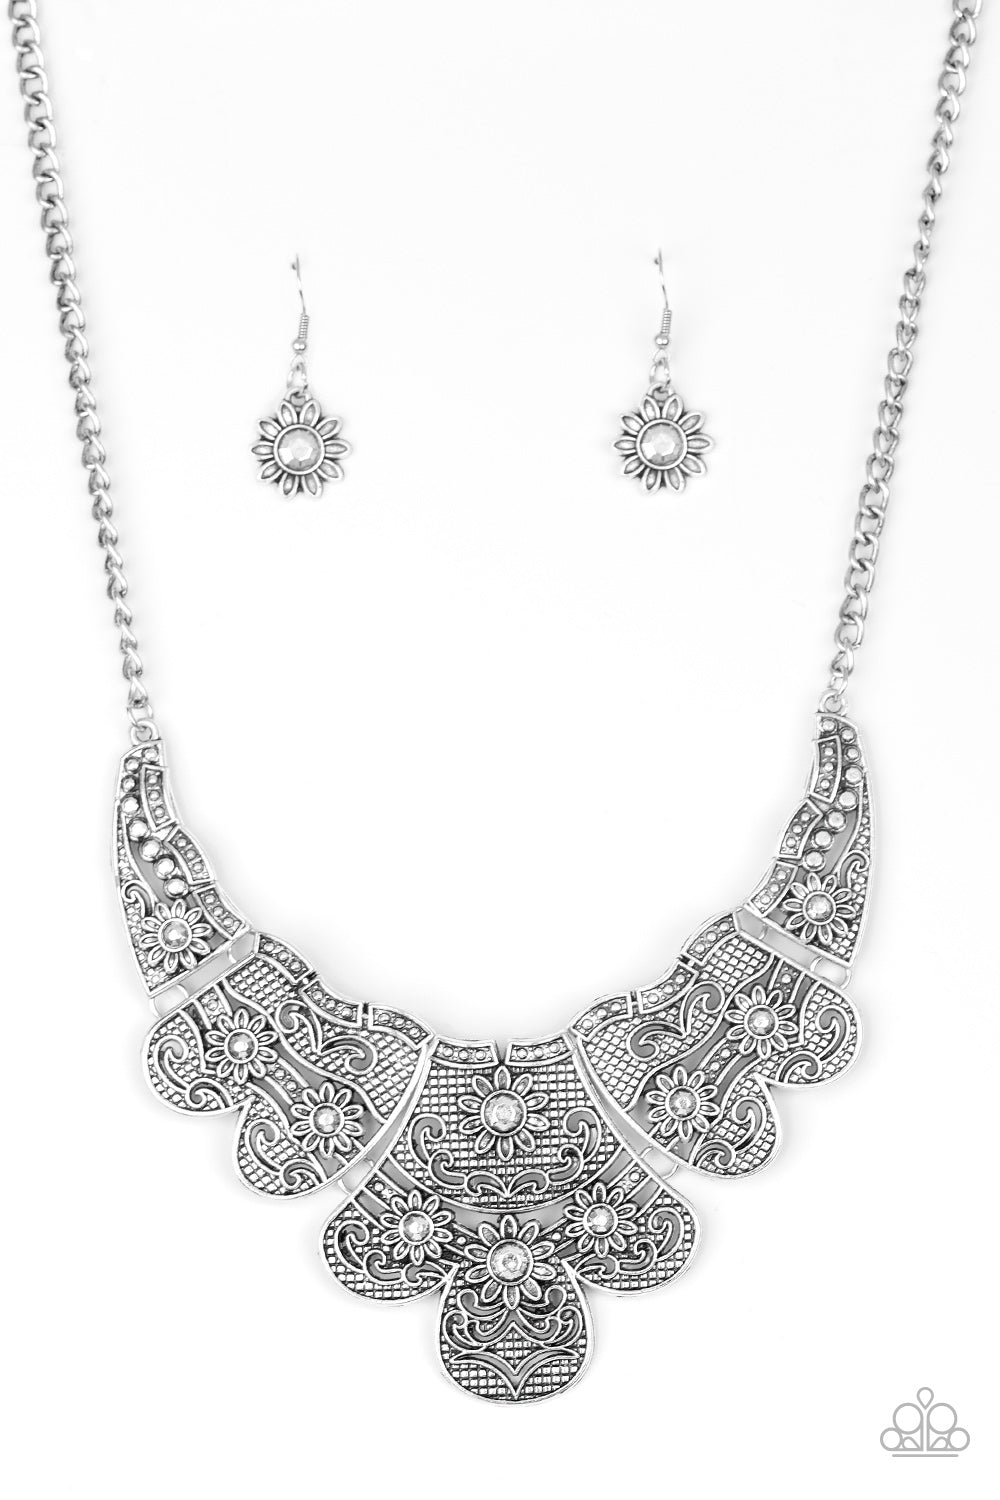 Paparazzi Accessories - Mess With The Bull - Silver Necklace Set - JMJ Jewelry Collection